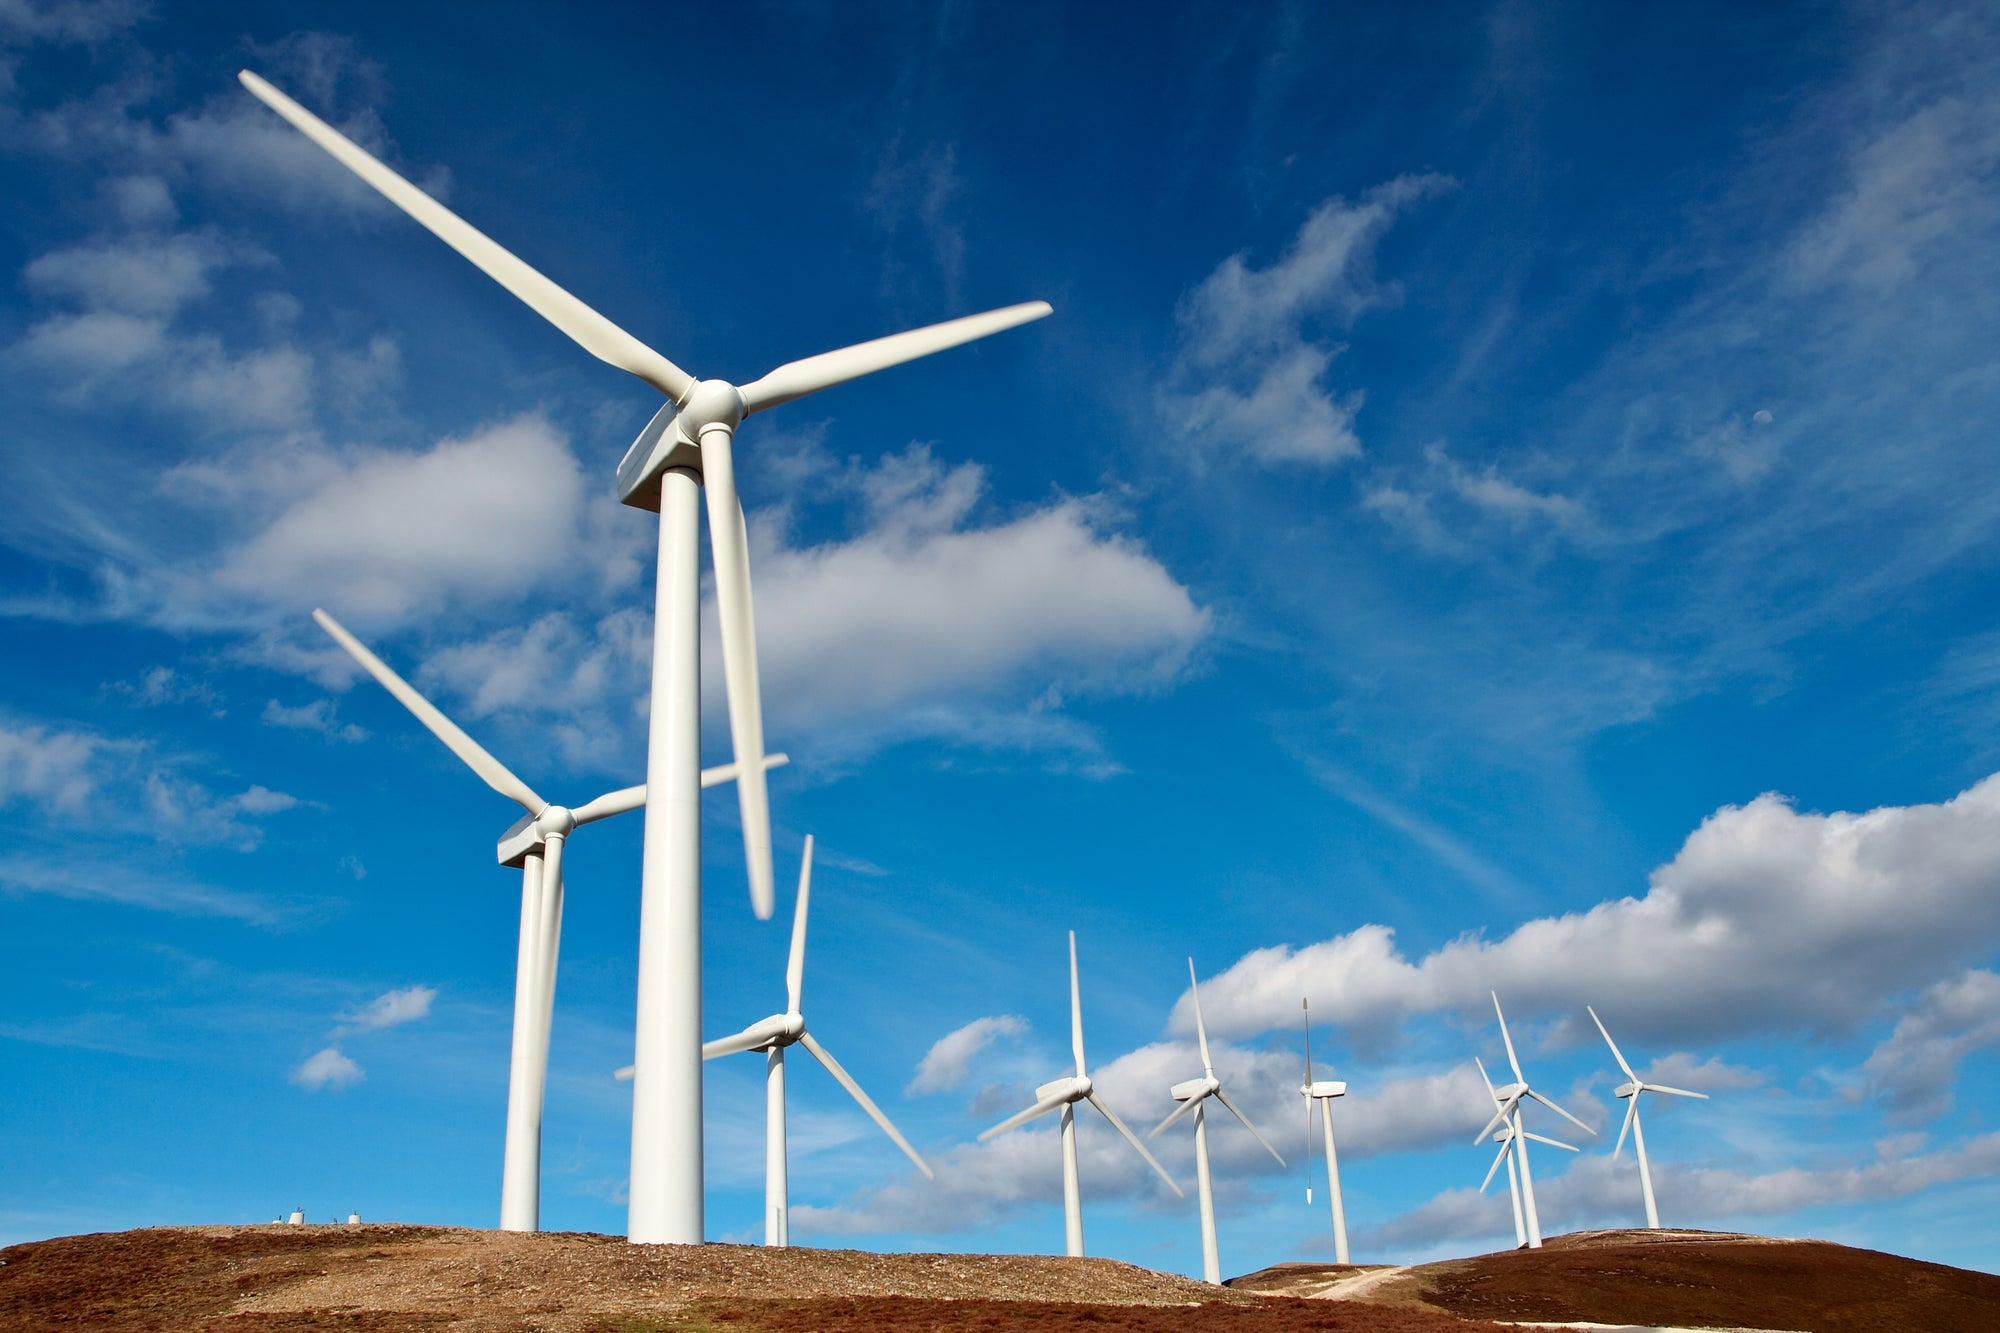 Wind turbines do not cause cancer